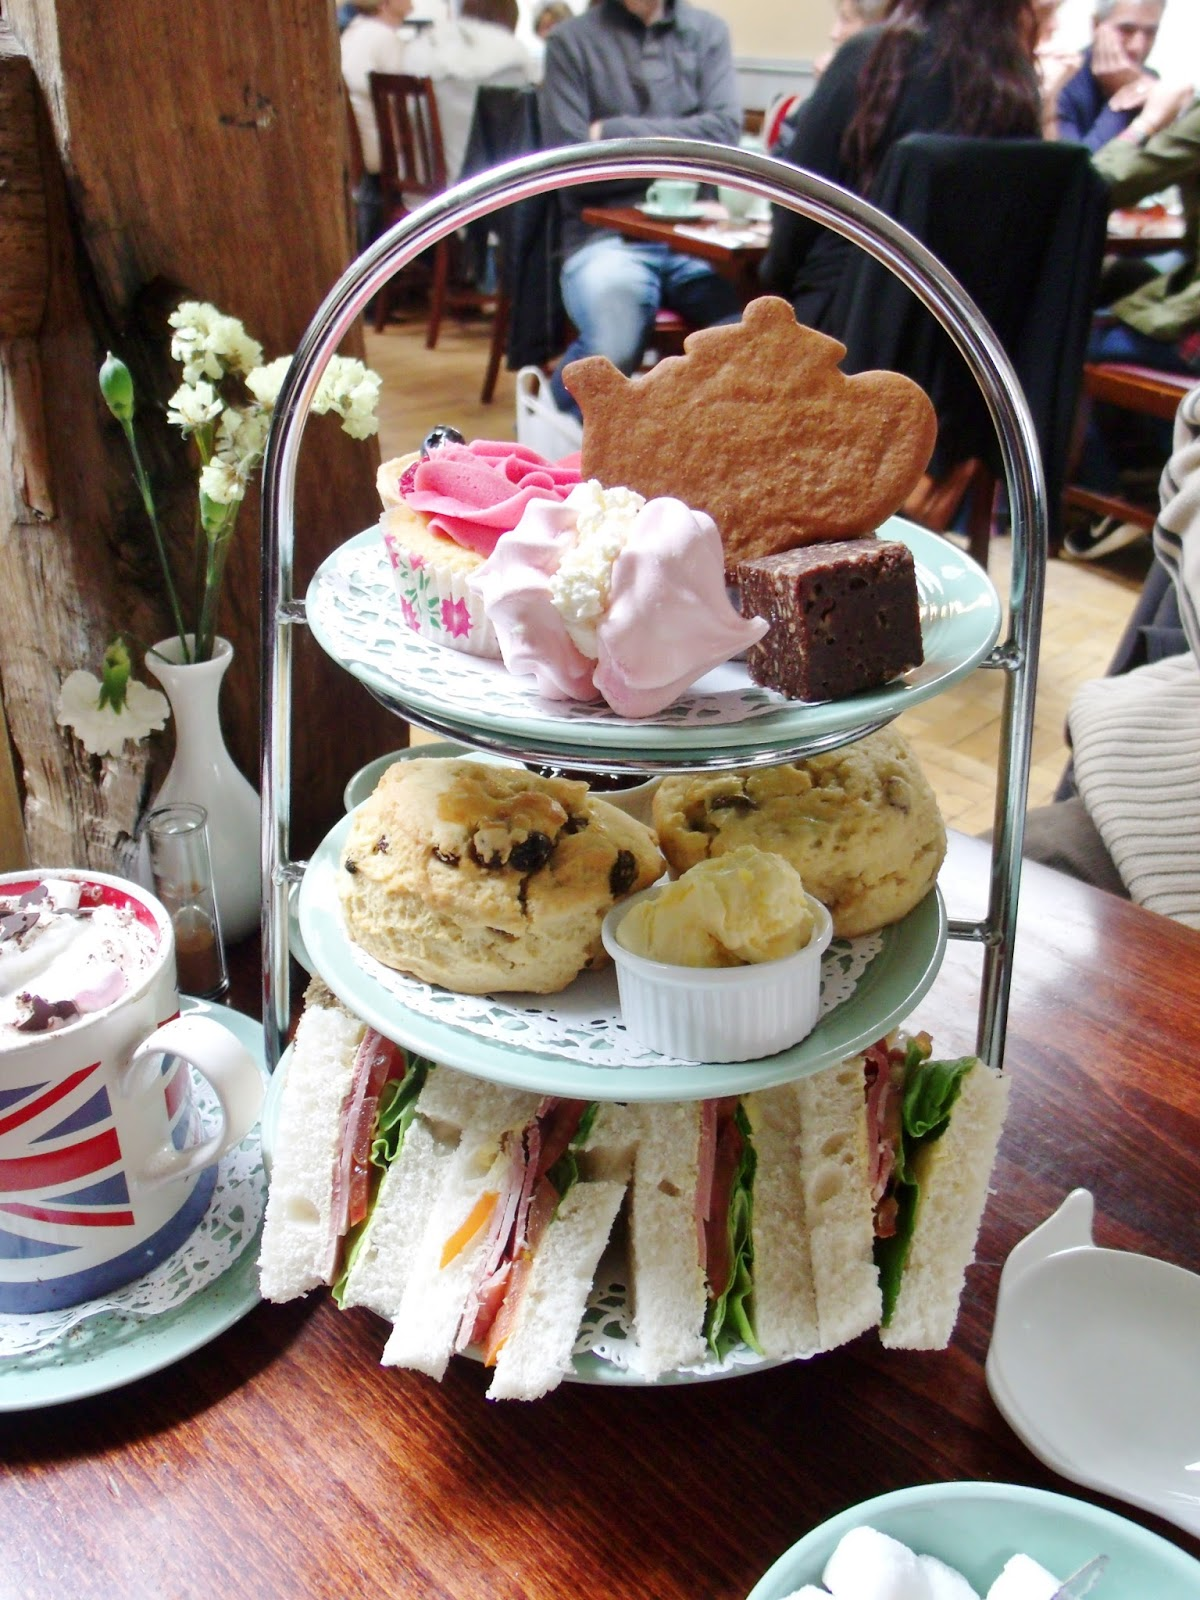 Review Afternoon Tea At The Fourteas Stratford Upon Avon